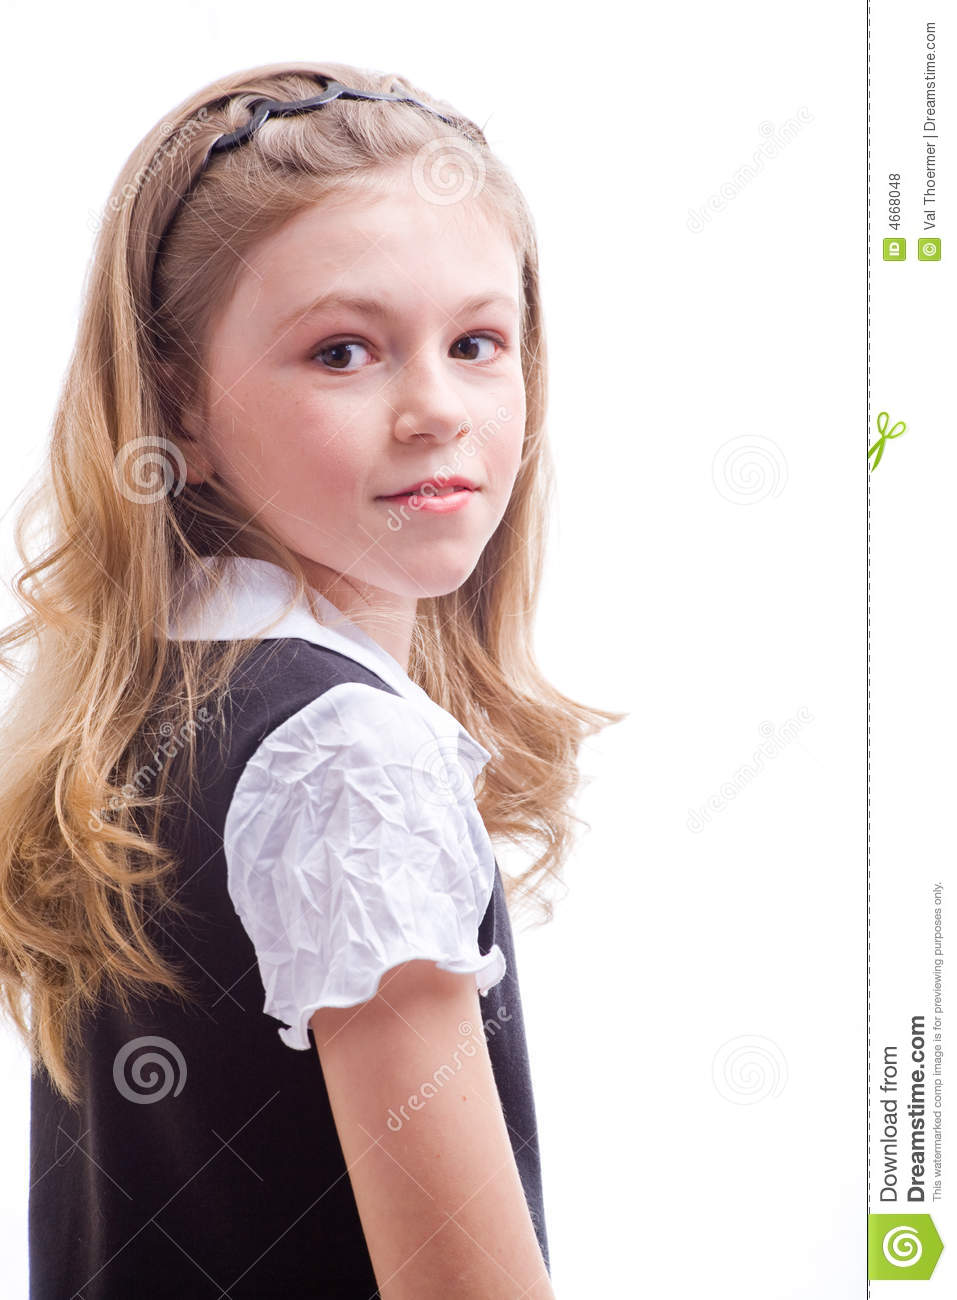 Schoolgirl Royalty Free Stock Photos Image